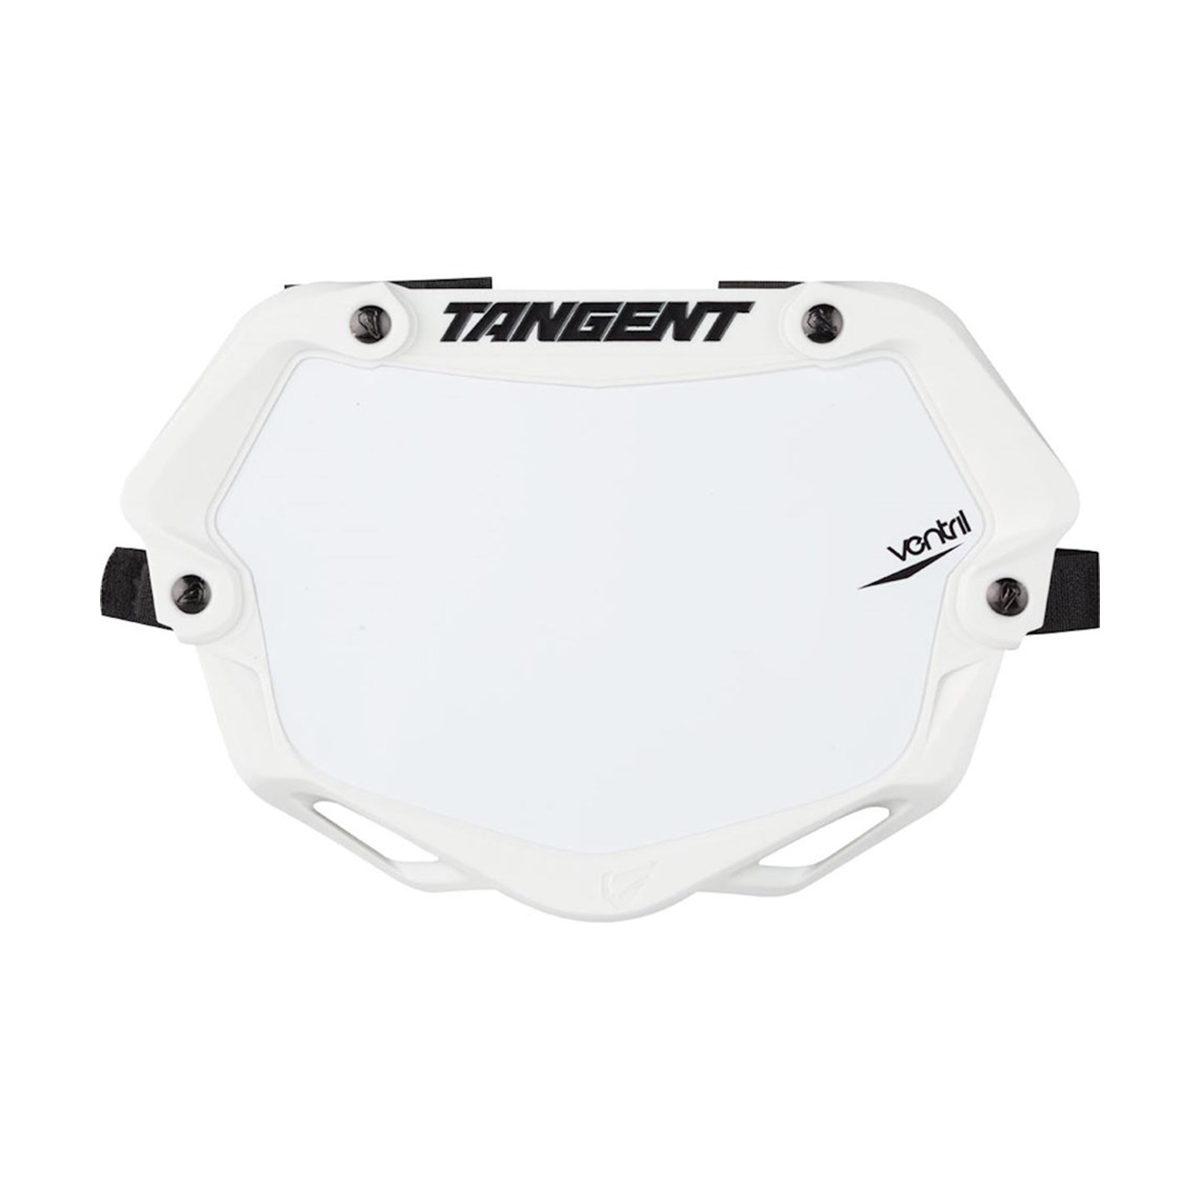 Tangent Pro Ventril 3D Number Plate//Chrome Blu//White